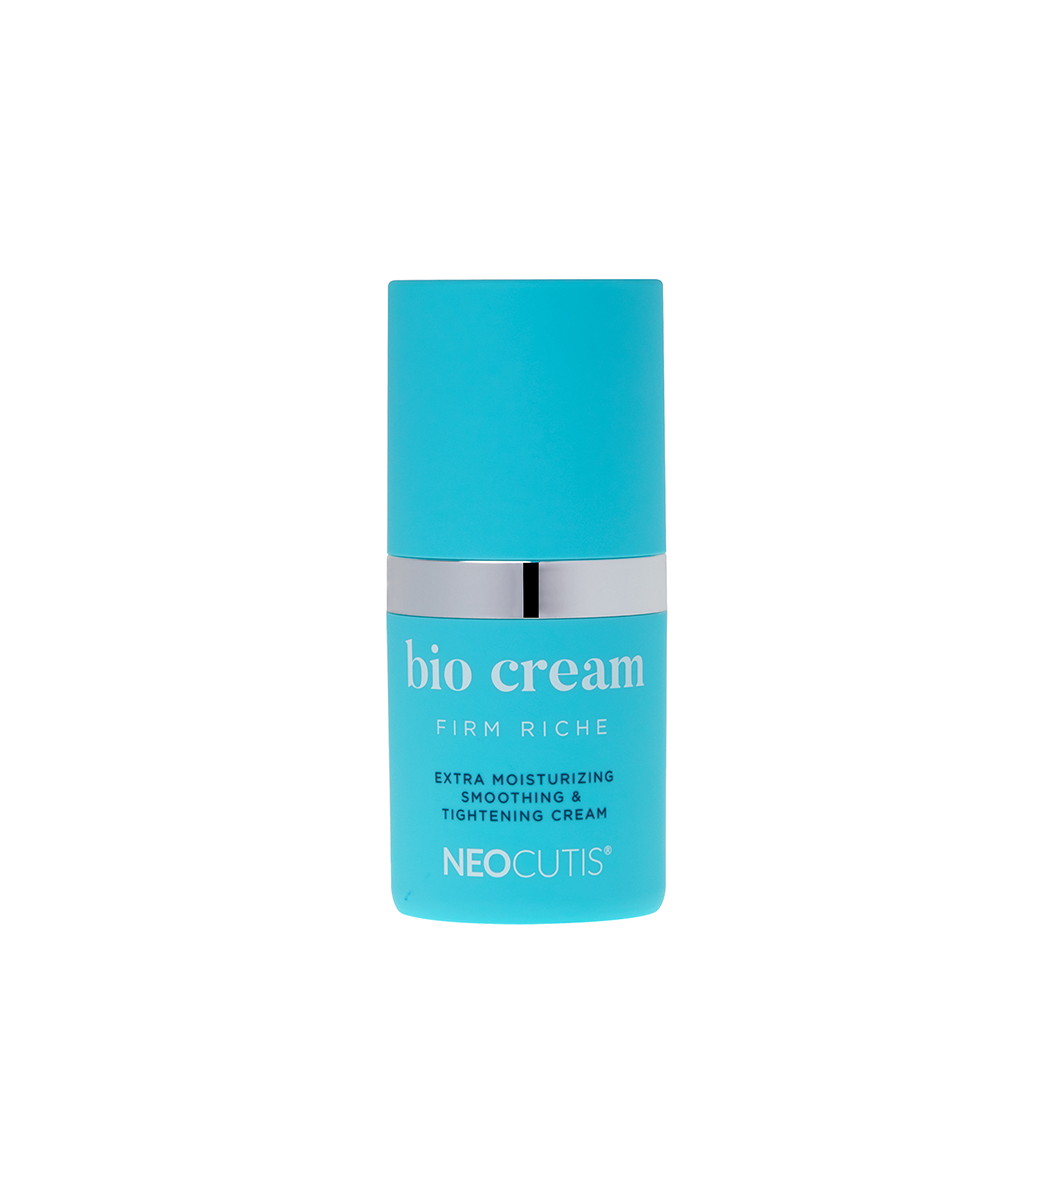 BIO CREAM FIRM RICHE 15ml